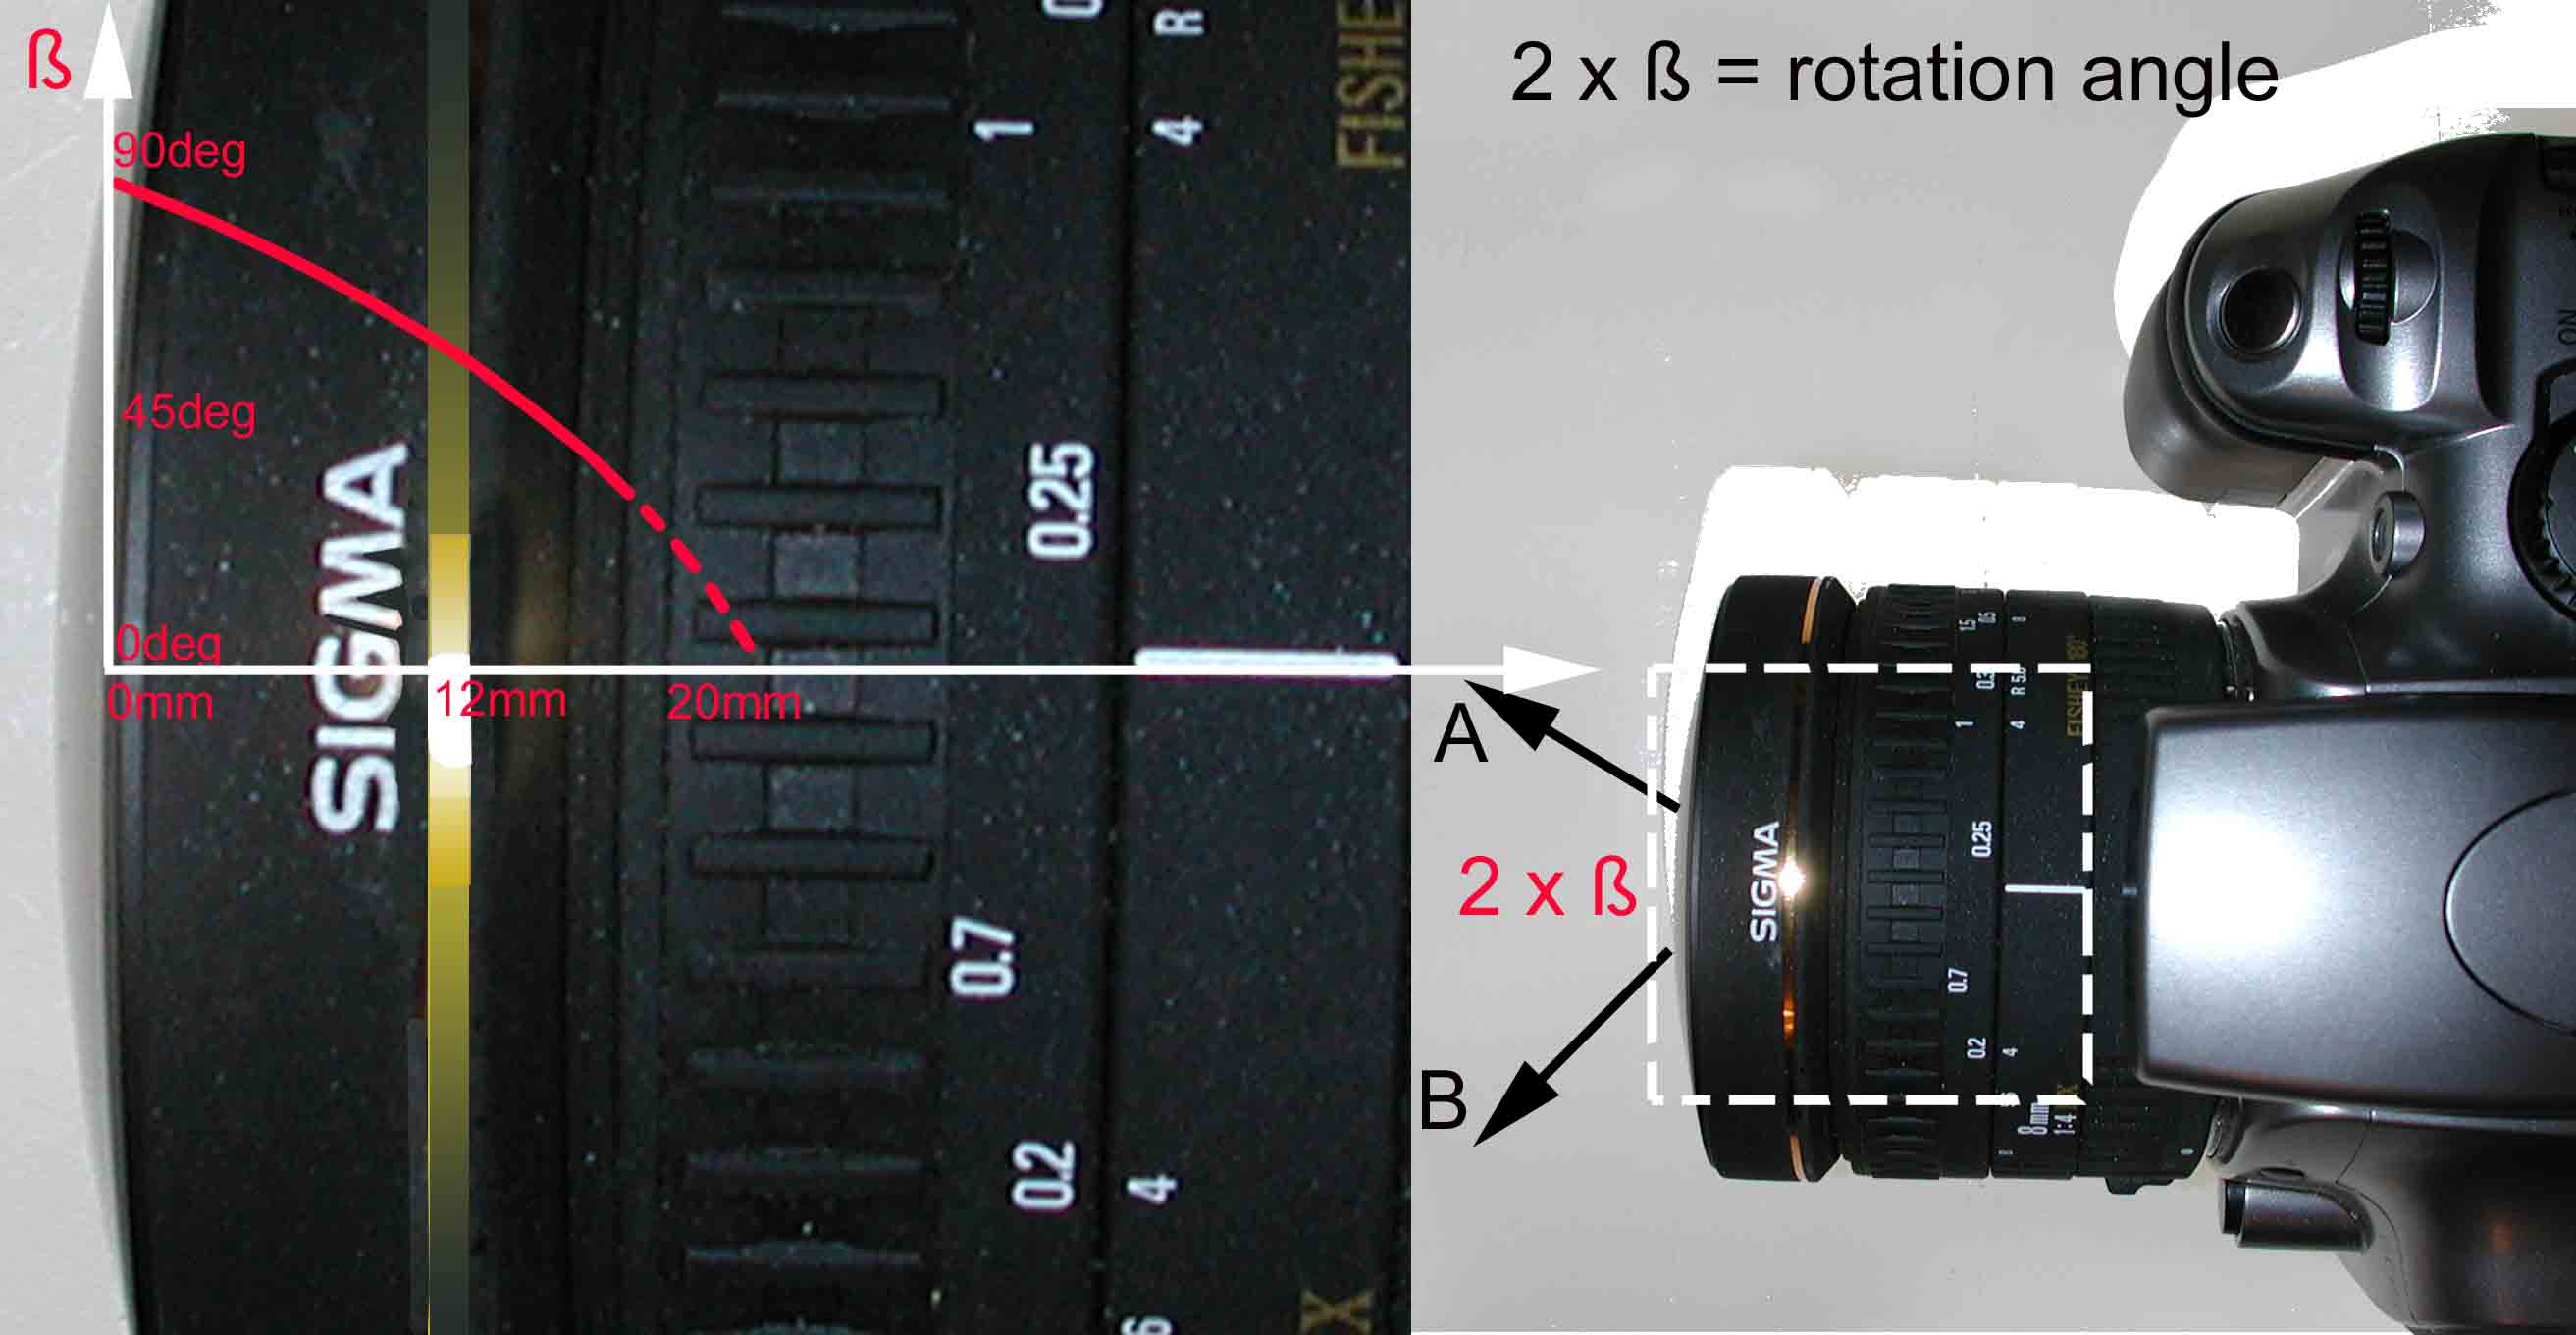 Comparison Nikkor Vs Sigma Short Eng 8mm F 35 Ex Dg Fisheye Circular 3 Measured Maximum Angle Of View And No Parallax Point Location